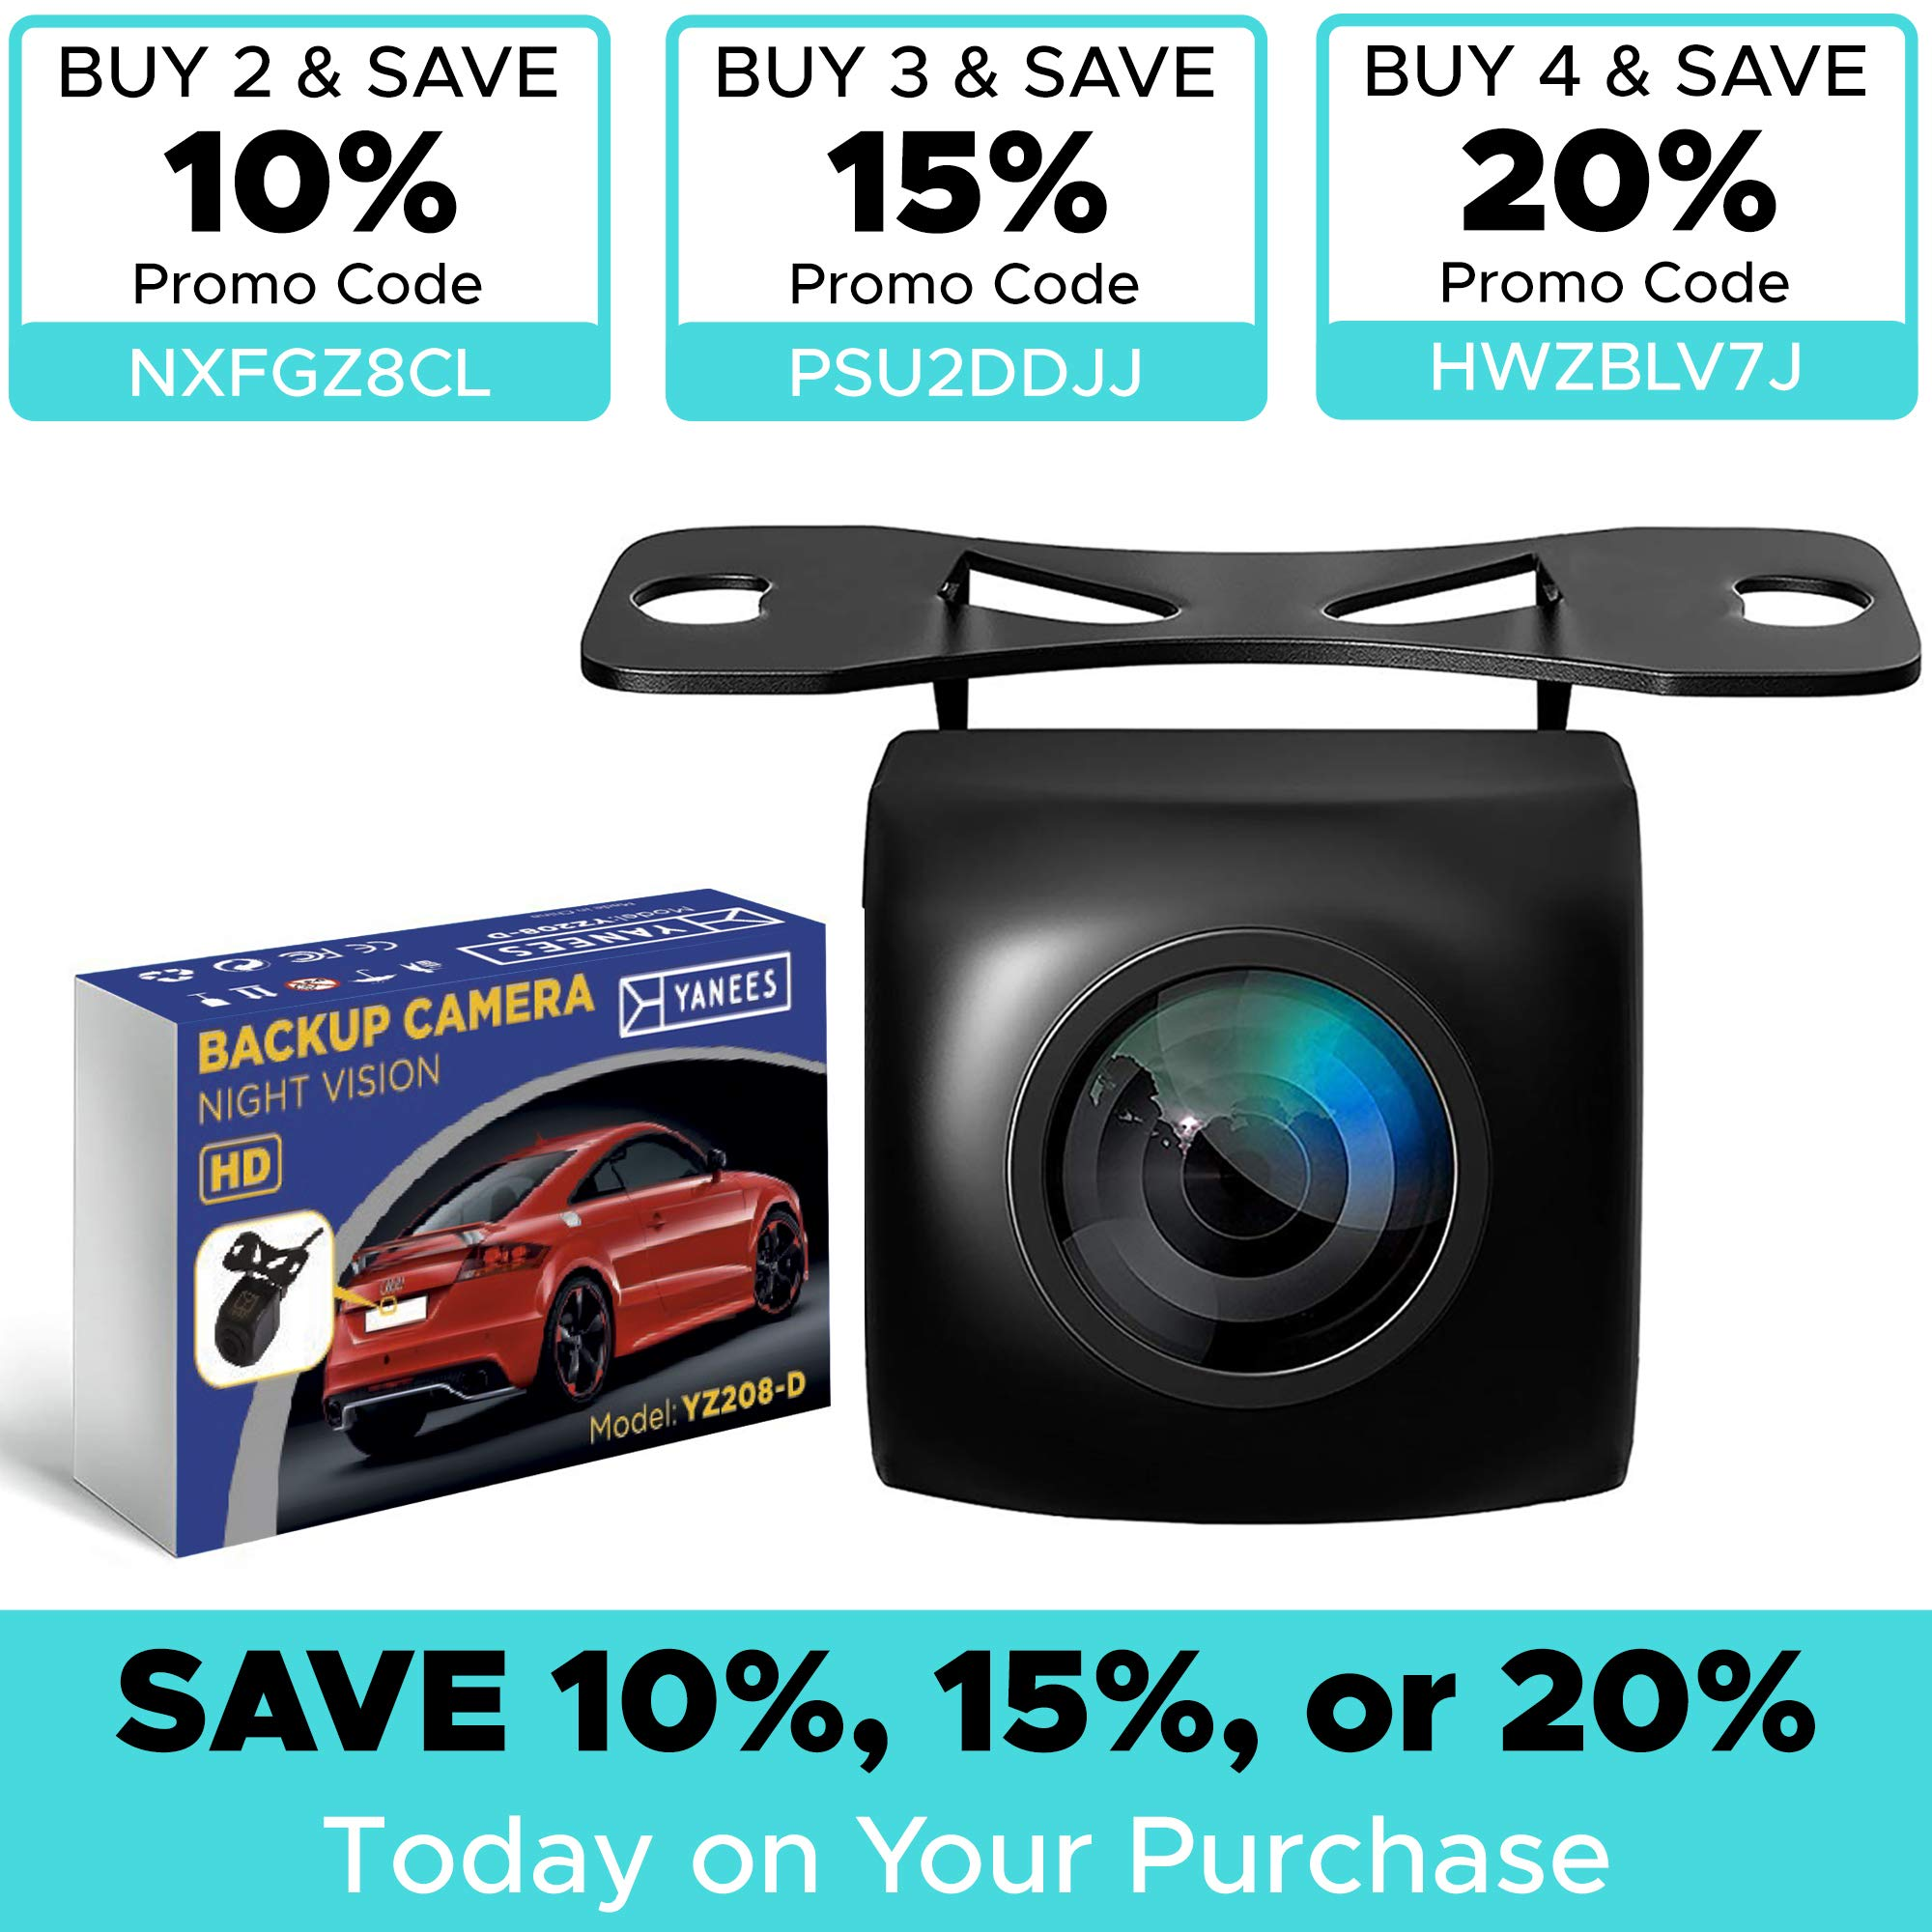 Backup Camera Night Vision - HD 1080p - Car Rear View Parking Camera - Best 170° Wide View Angel - Waterproof Reverse Auto Back Up Car Backing Camera - High Definition - Fits All Vehicles by Yanees by YANEES (Image #9)